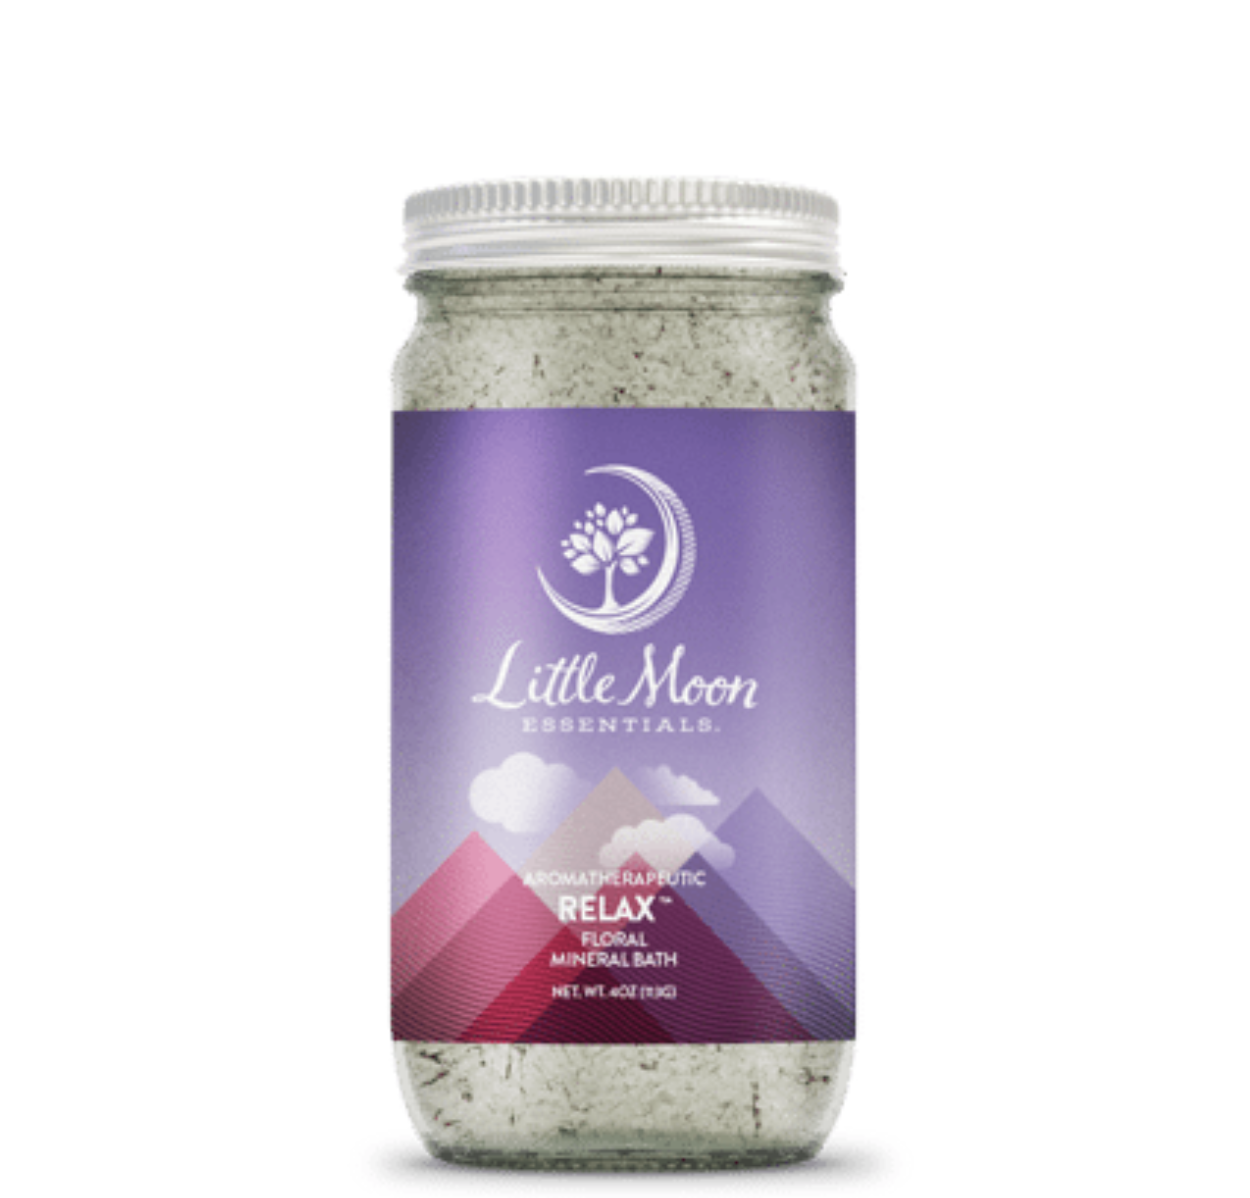 Little Moon Essentials Bath Salt 4oz - Relax